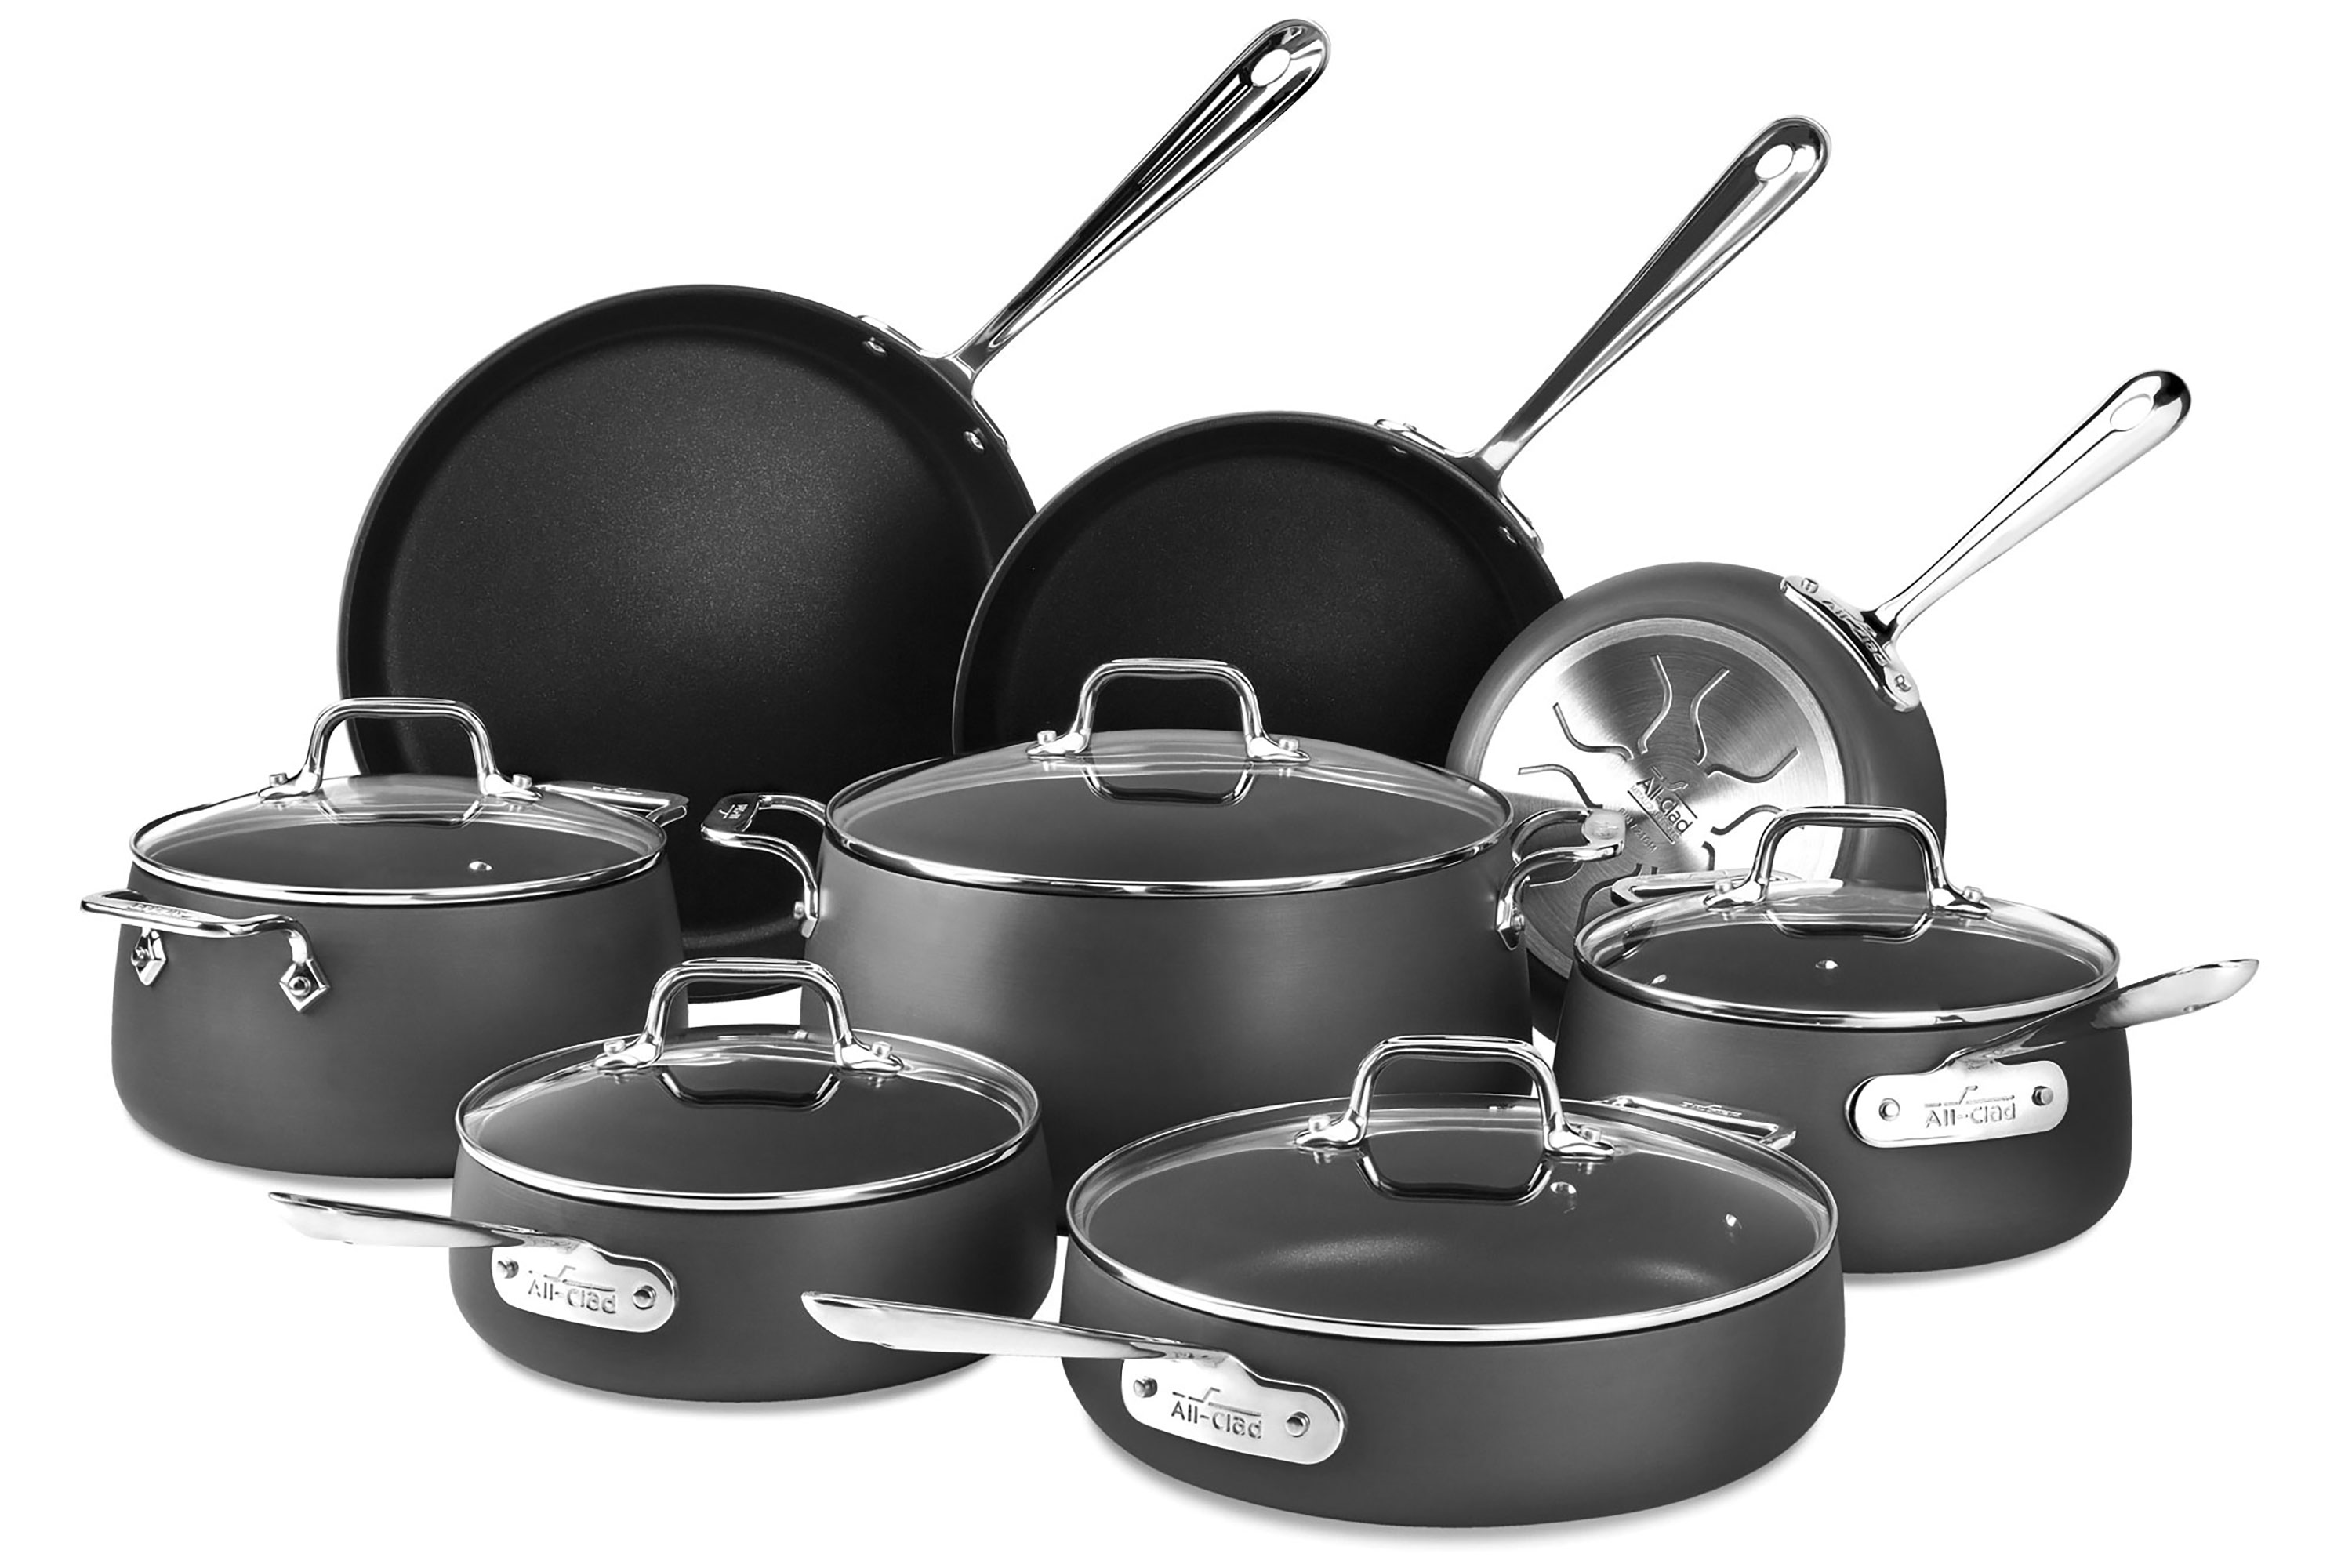 all clad ha1 nonstick cookware set 13 piece pots and pans cutlery and more. Black Bedroom Furniture Sets. Home Design Ideas